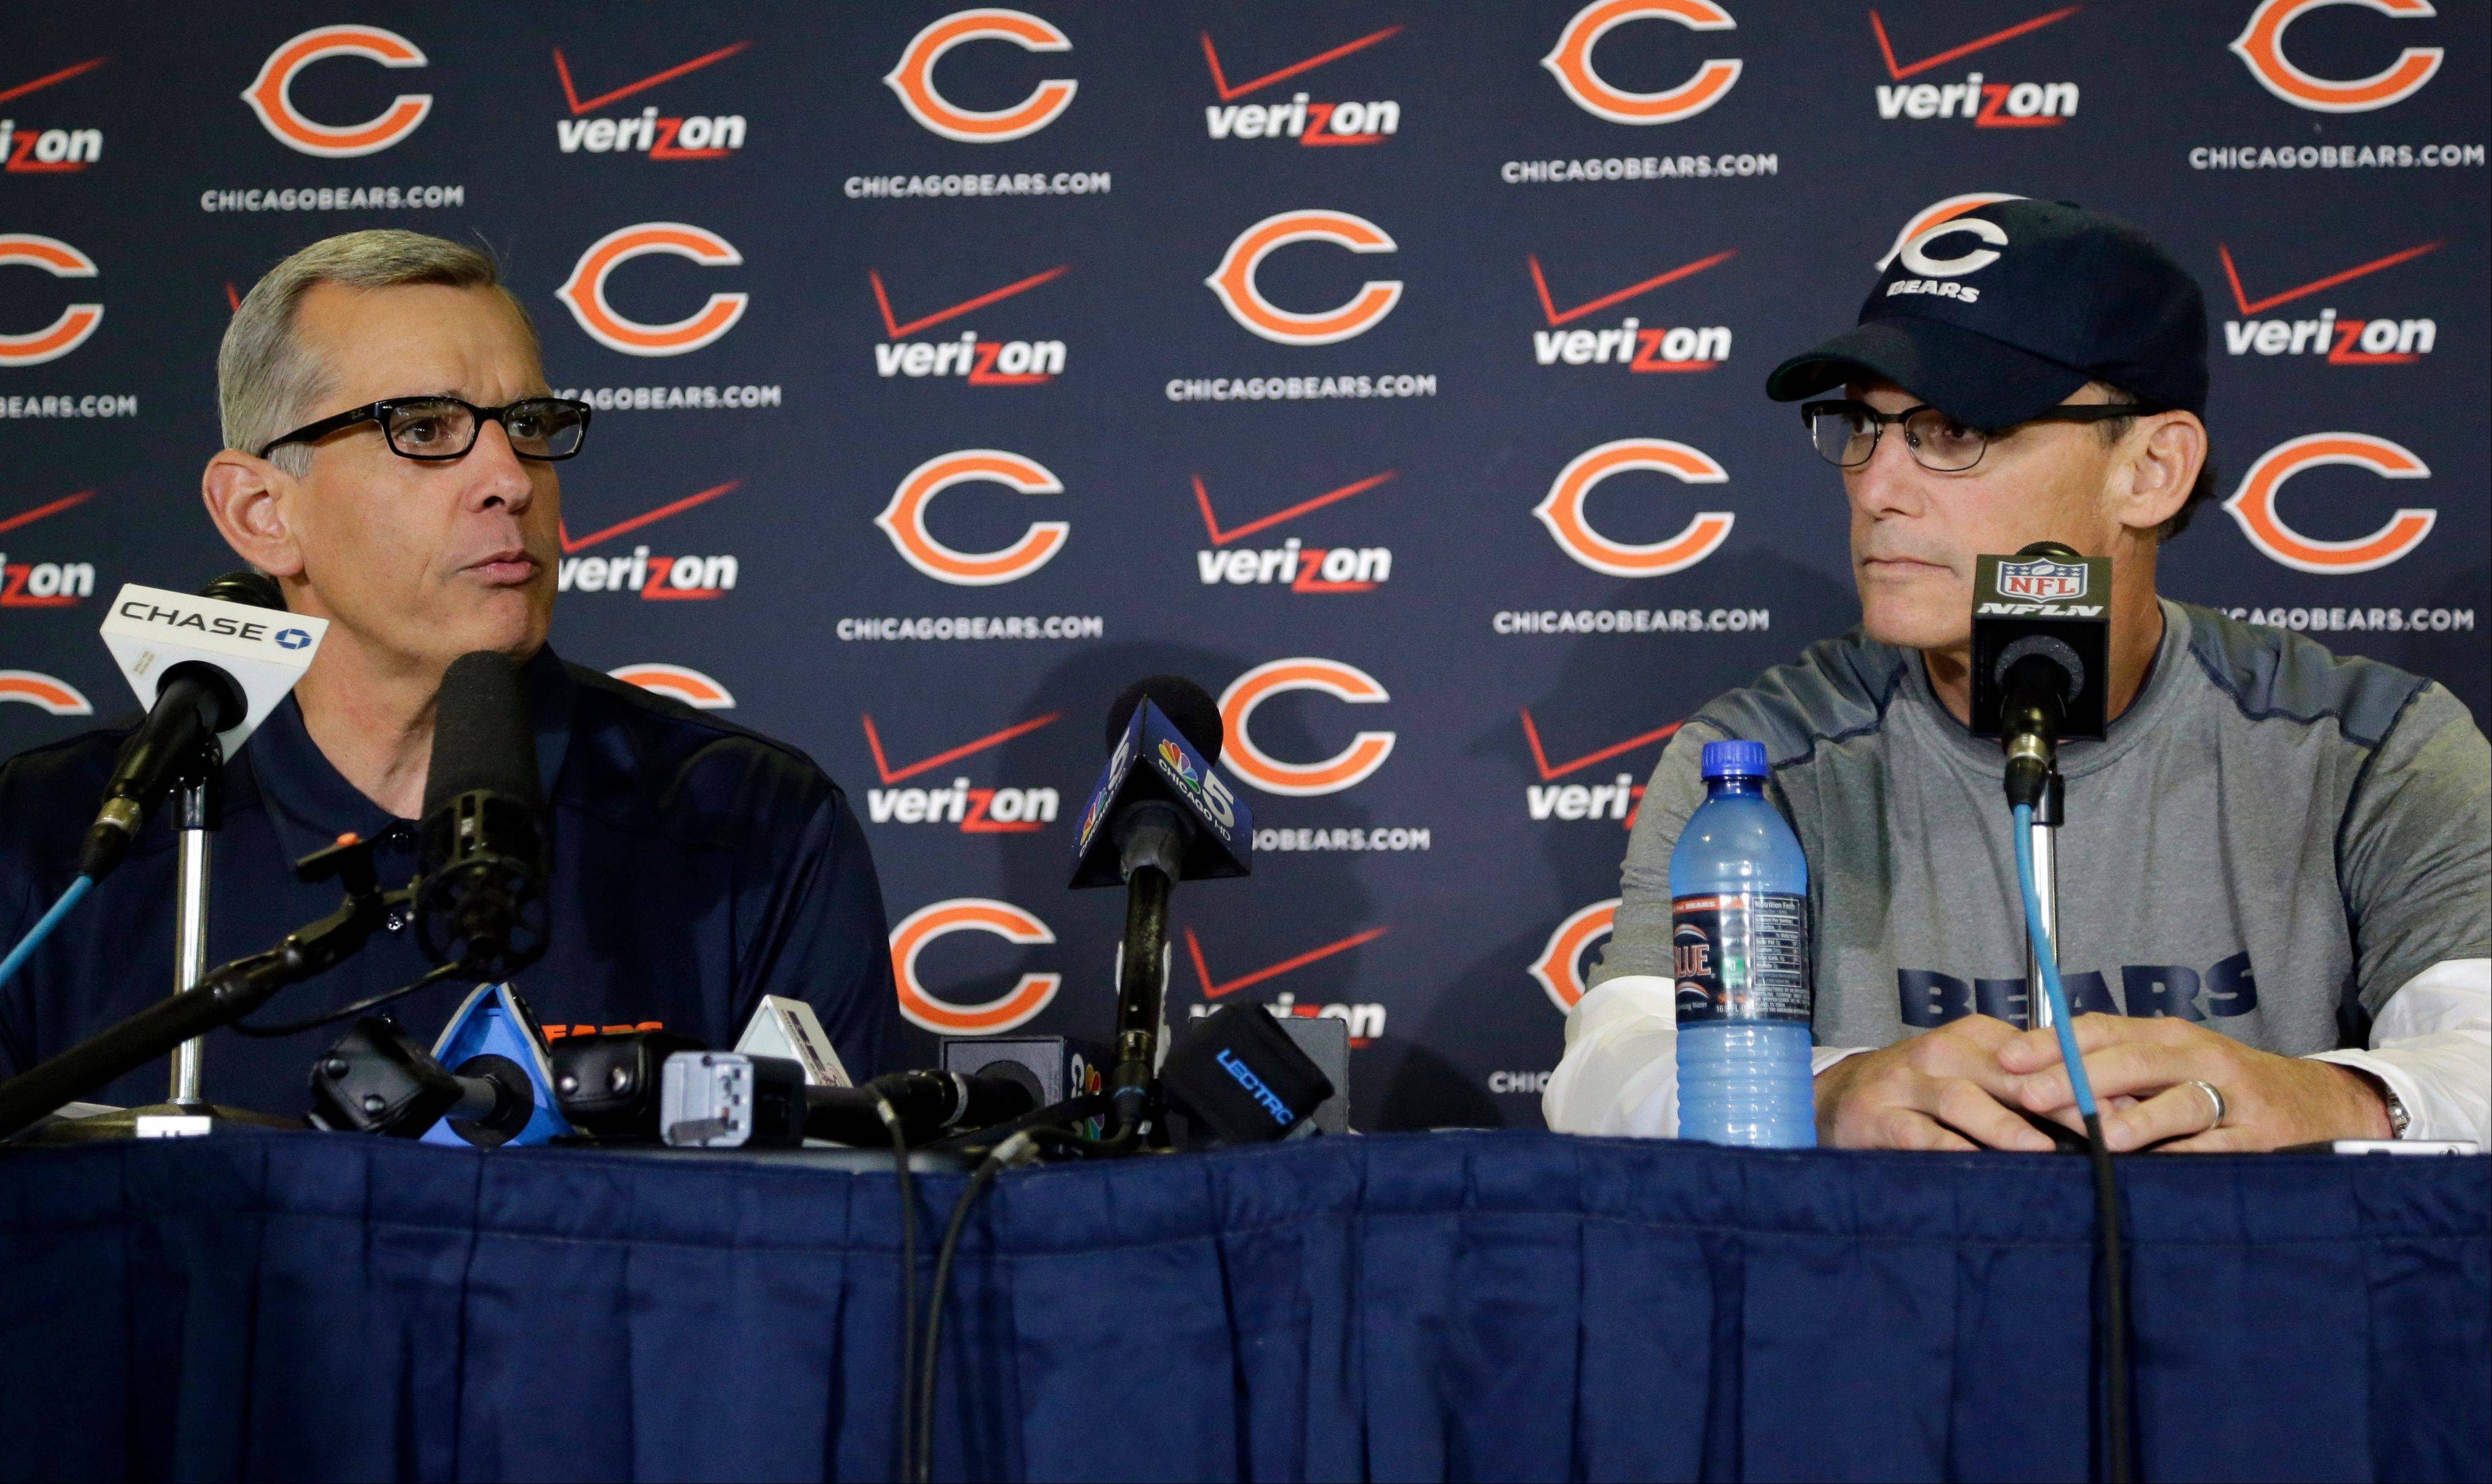 Chicago Bears general manager Phil Emery, left, and coach Marc Trestman listen to questions during an NFL football news conference on Wednesday, July 24, 2013, in Bourbonnais, Ill.